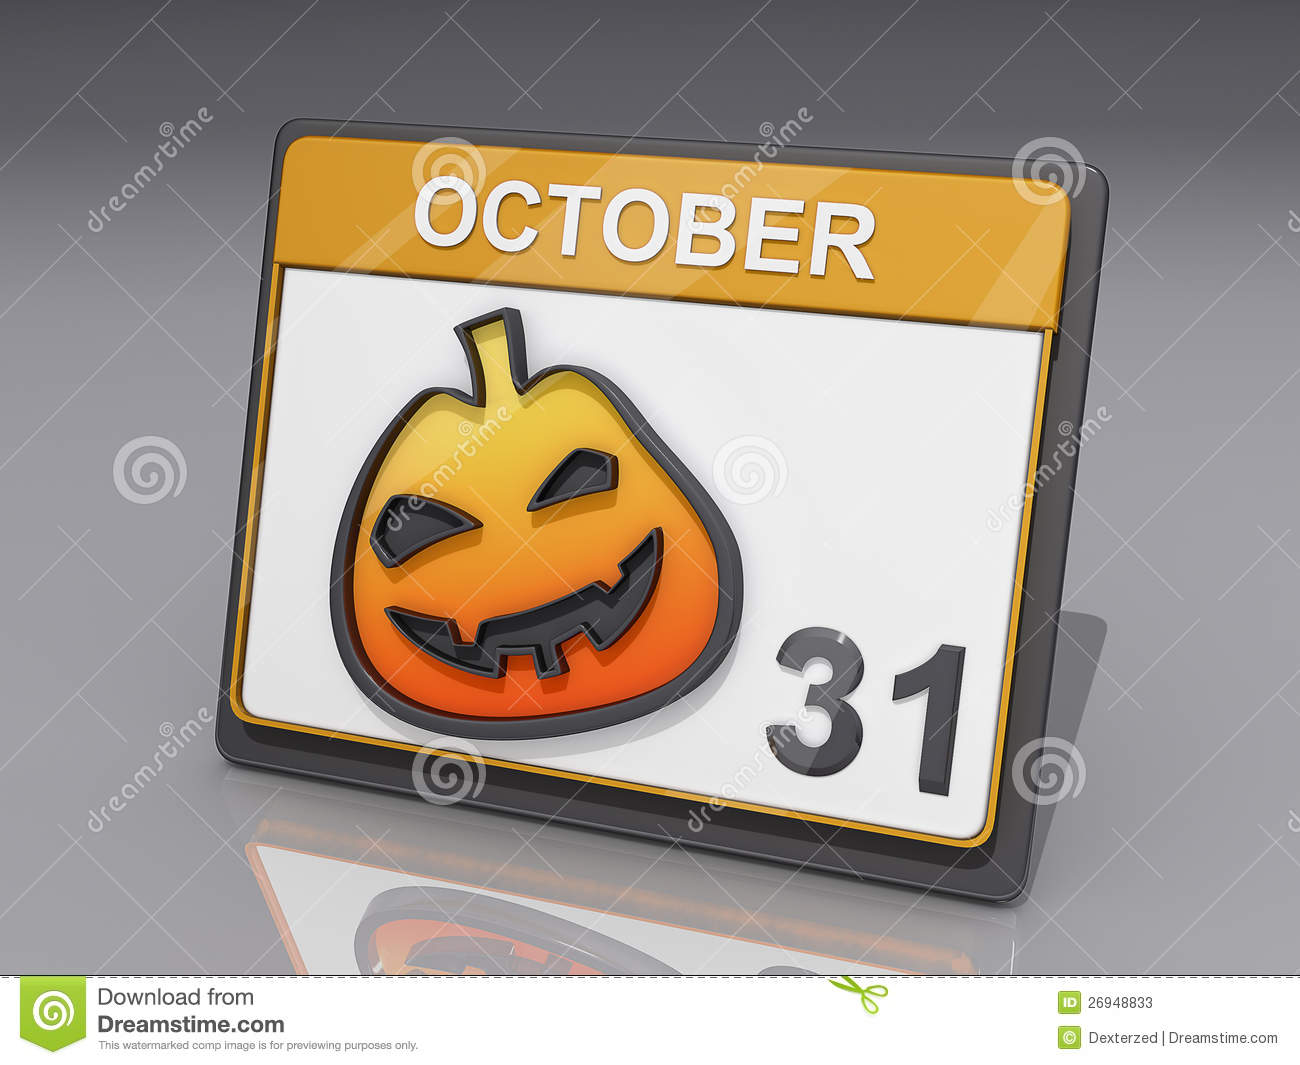 halloween october 31 stock photos image 26948833 why is halloween on october 31 - Why Is Halloween On The 31st Of October